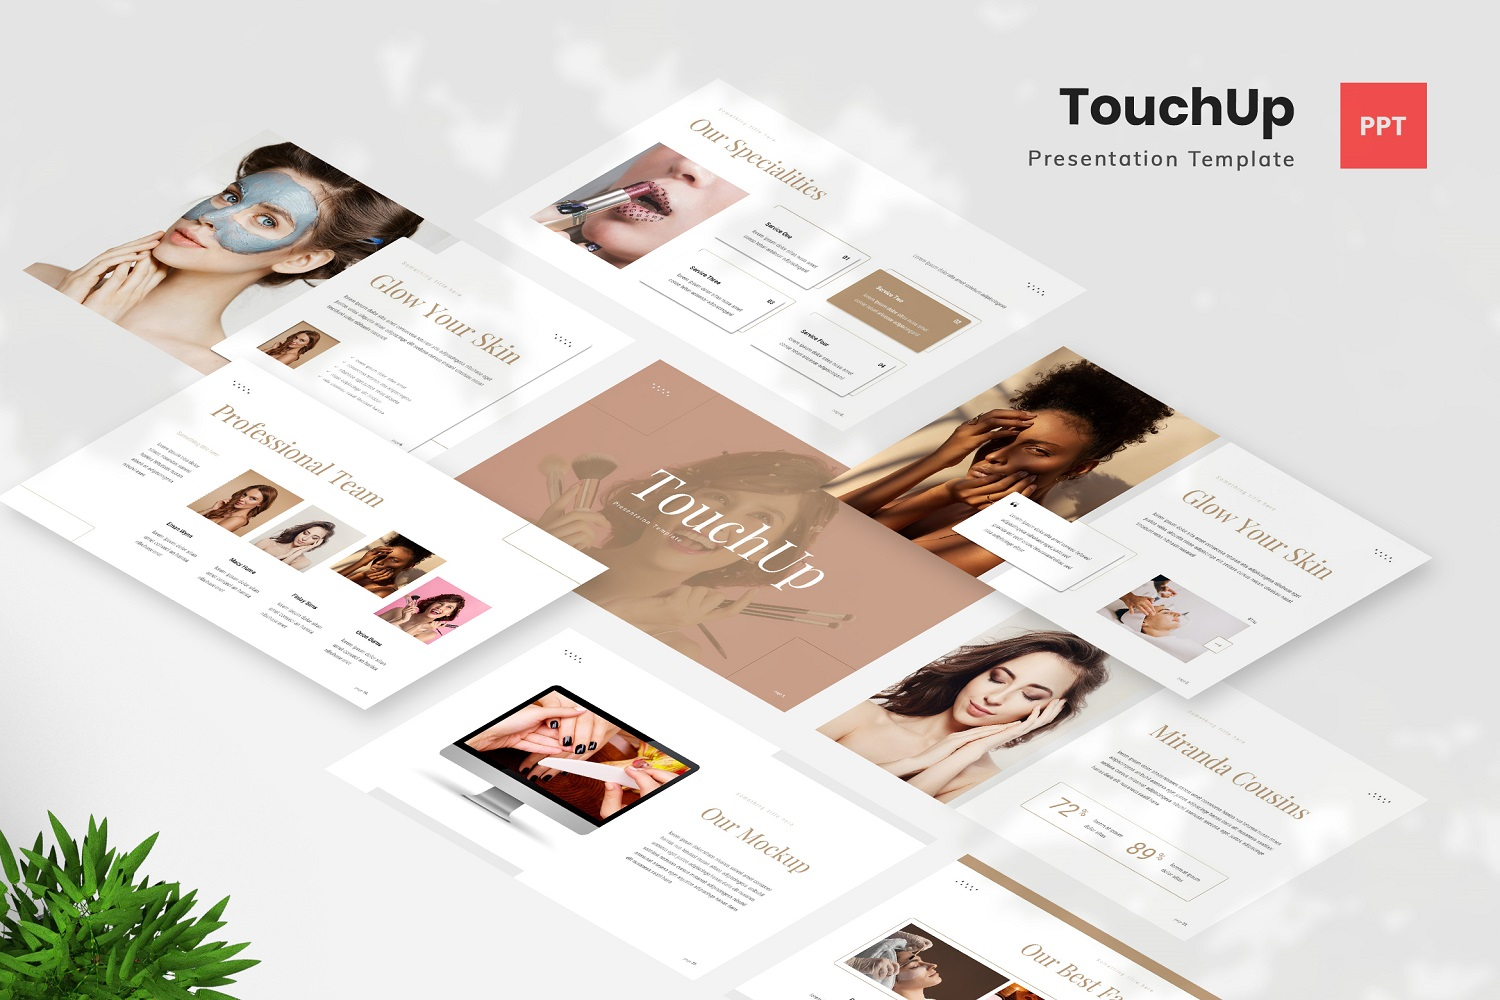 TouchUp - Beauty Care PowerPoint Template